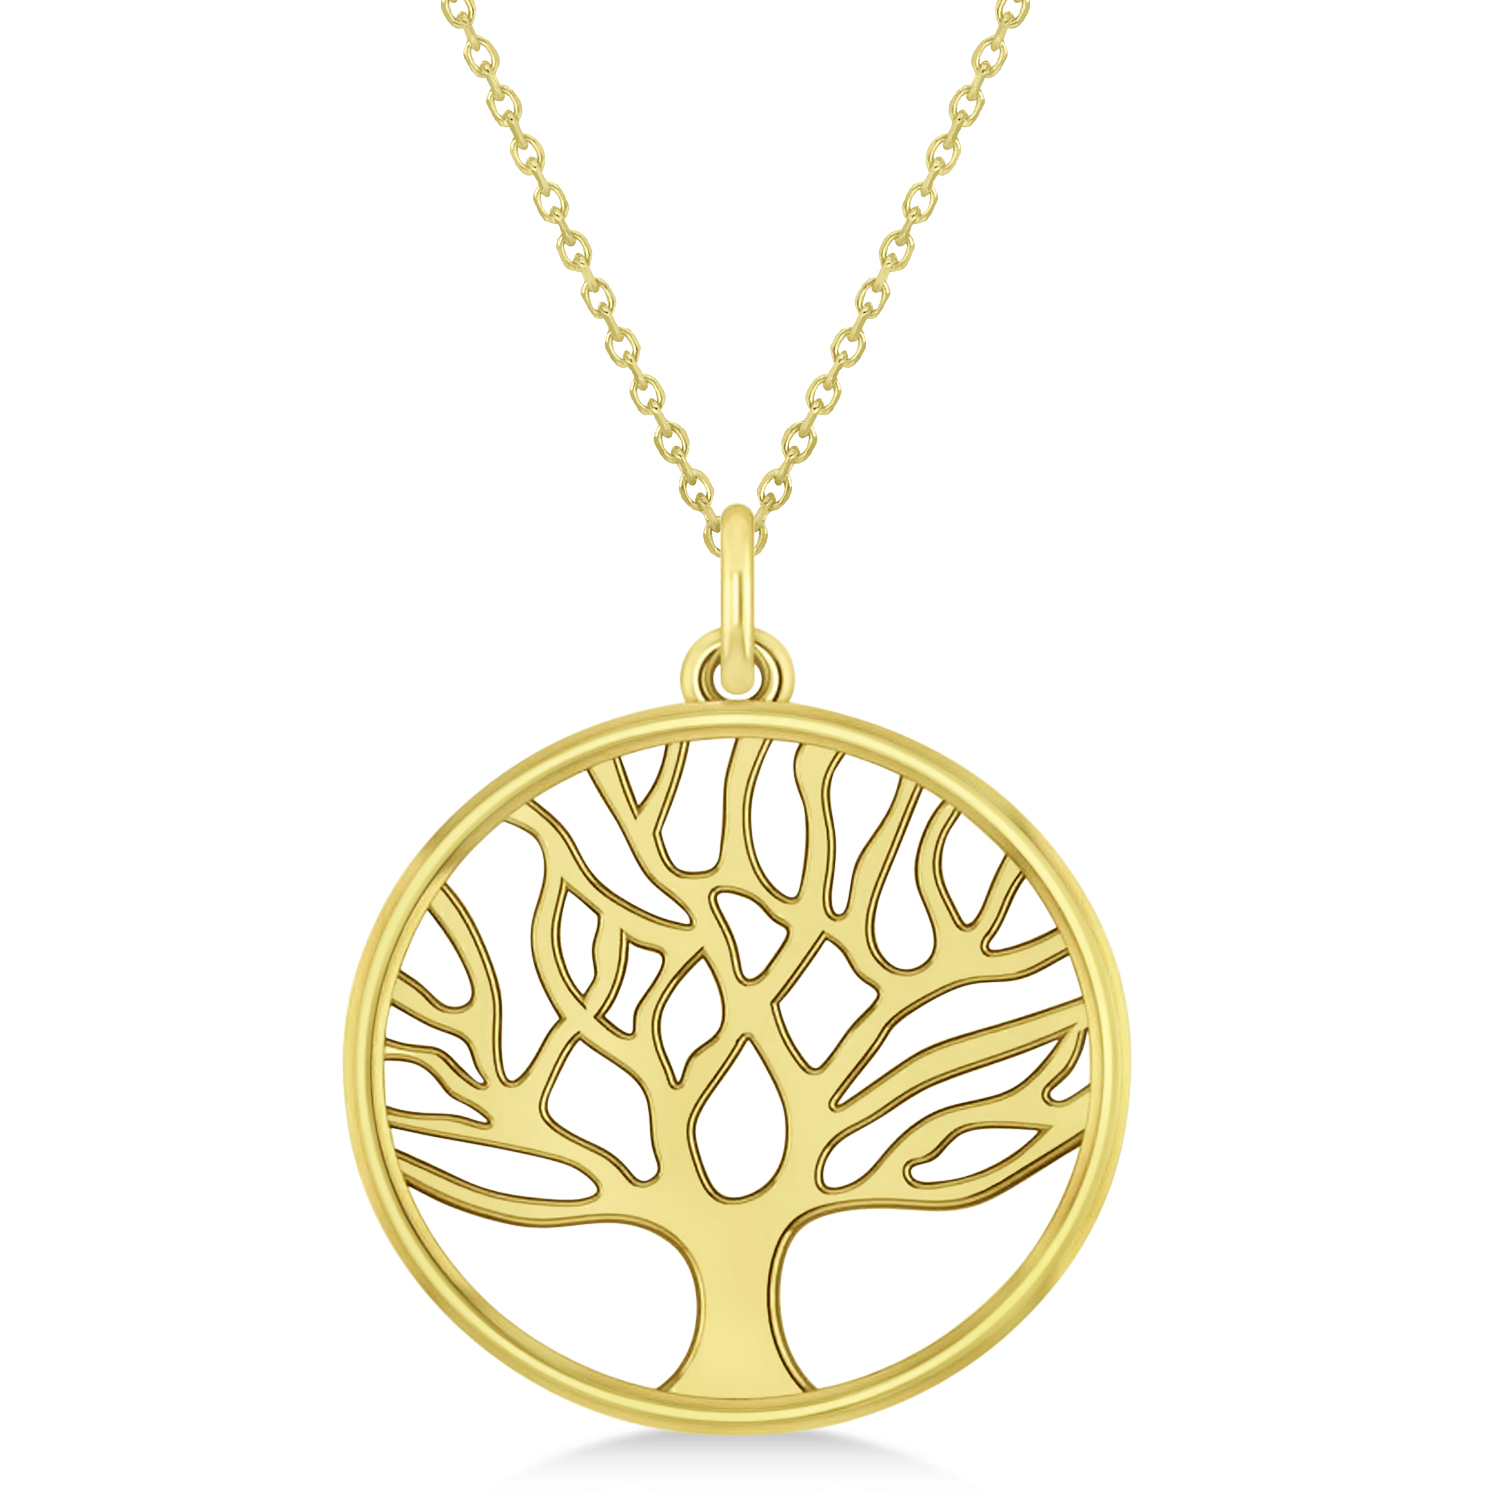 Family Tree of Life Pendant Necklace 14k Yellow Gold - AD2249